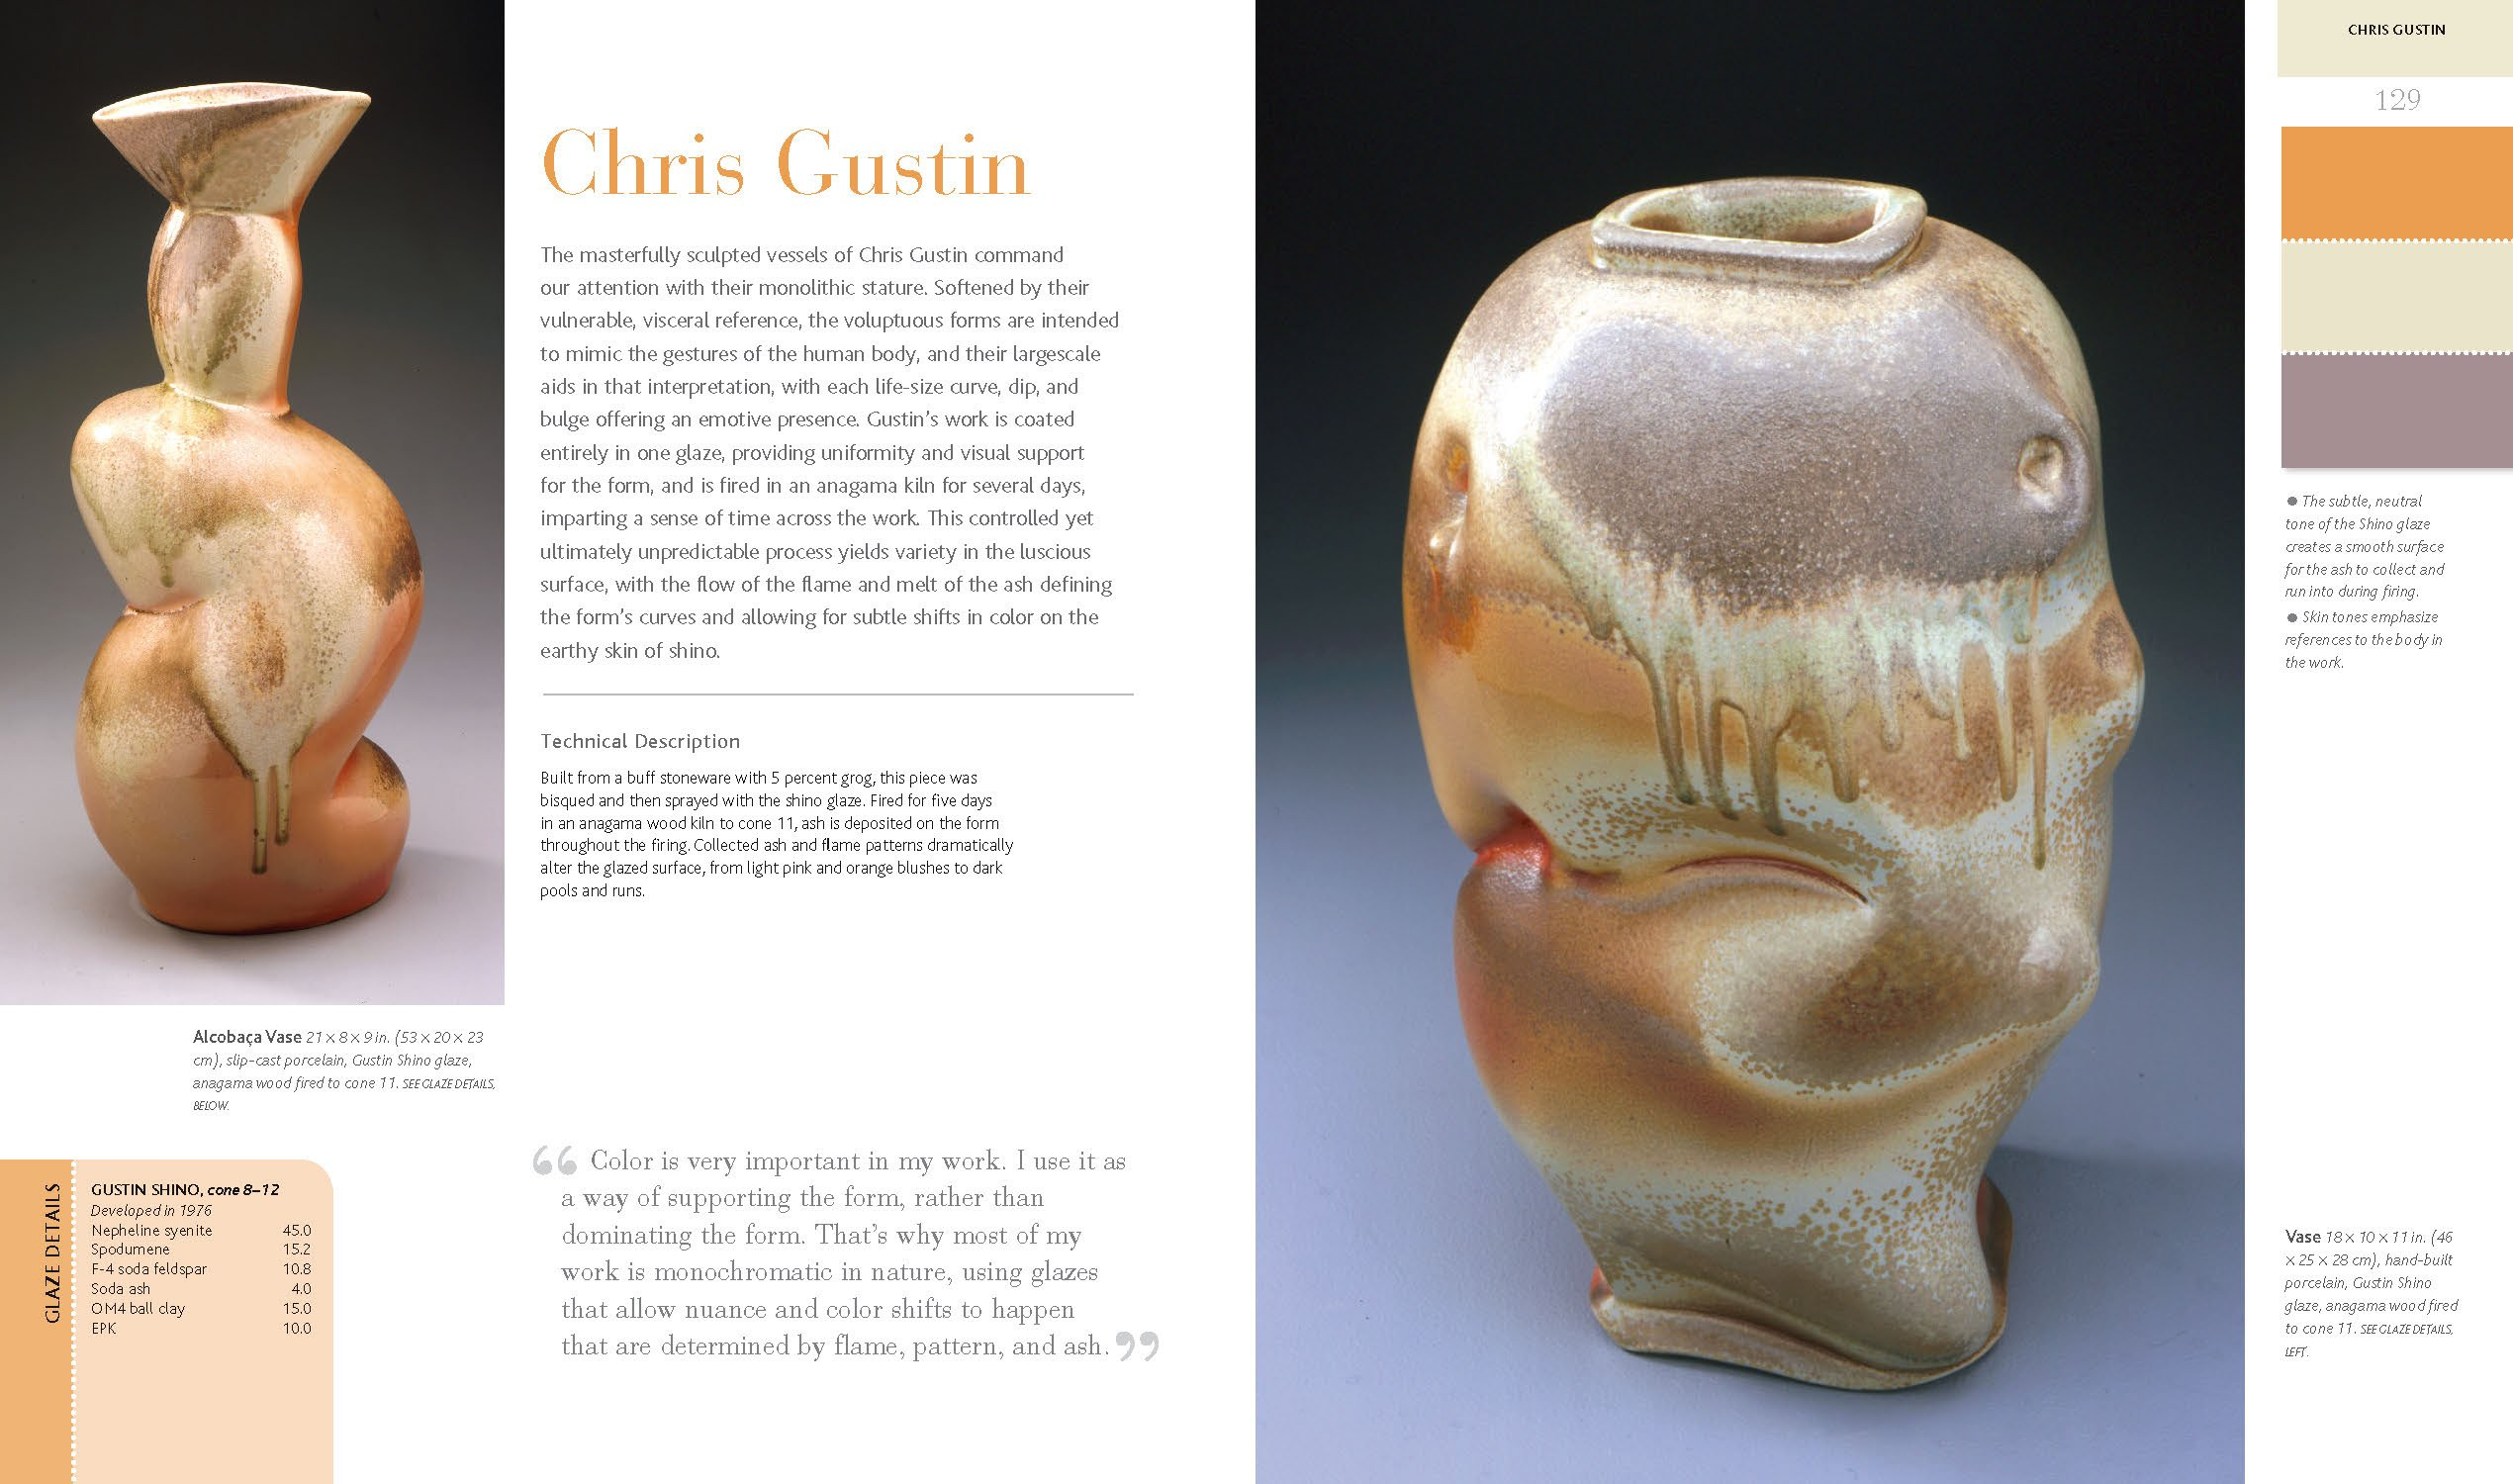 glaze the ultimate ceramic artist s guide to glaze and color brian